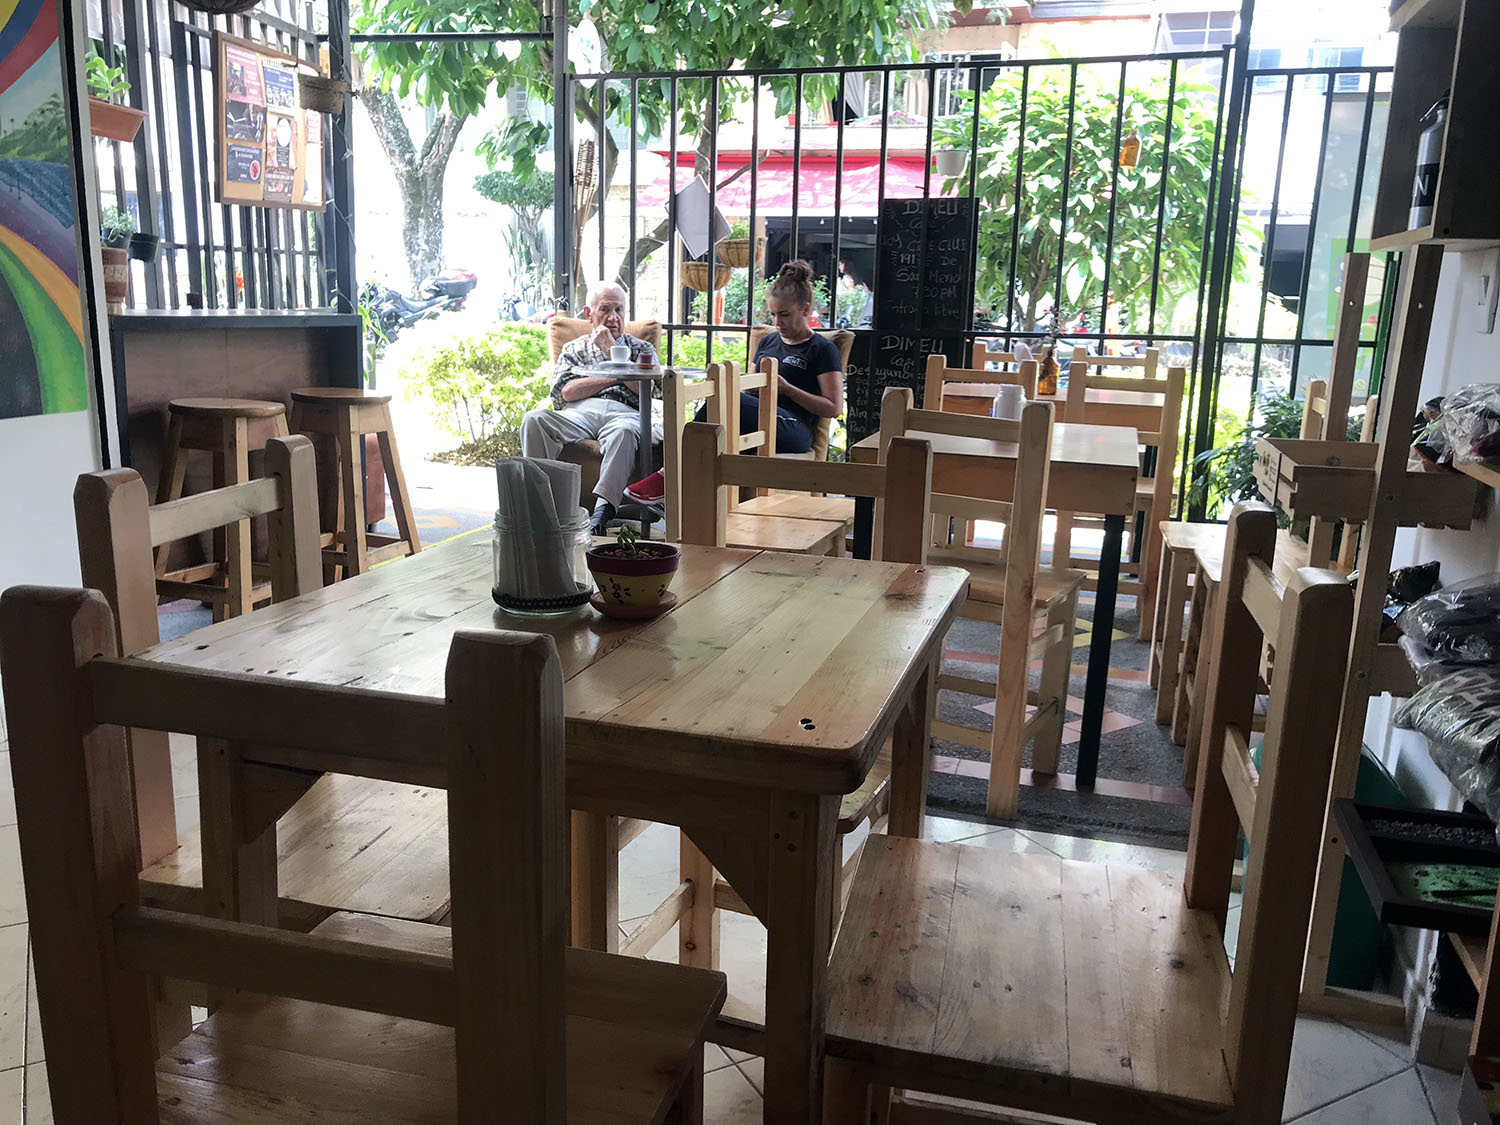 small local cafe with wooden chairs and tables